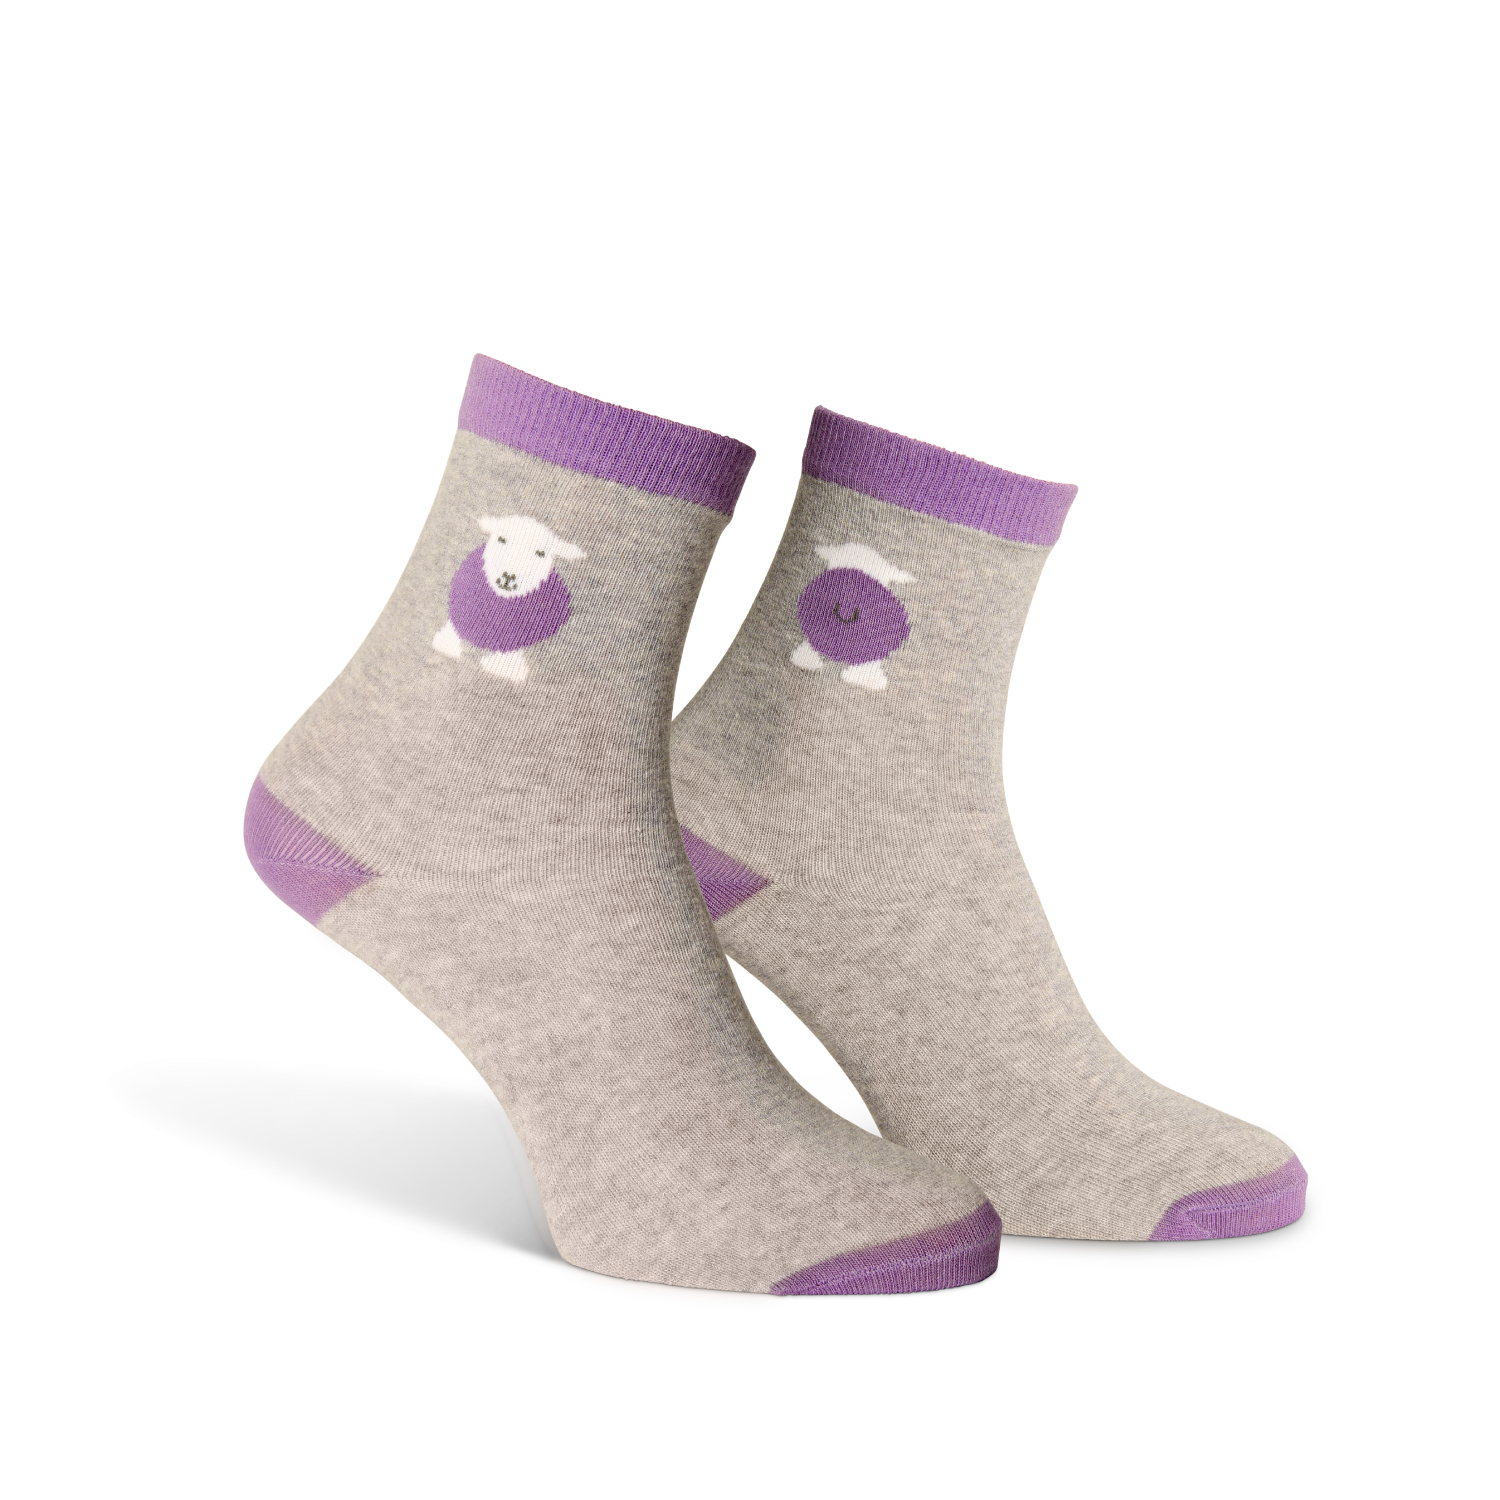 Kids Yan Socks - Purple - Size 9-12 (27-30)